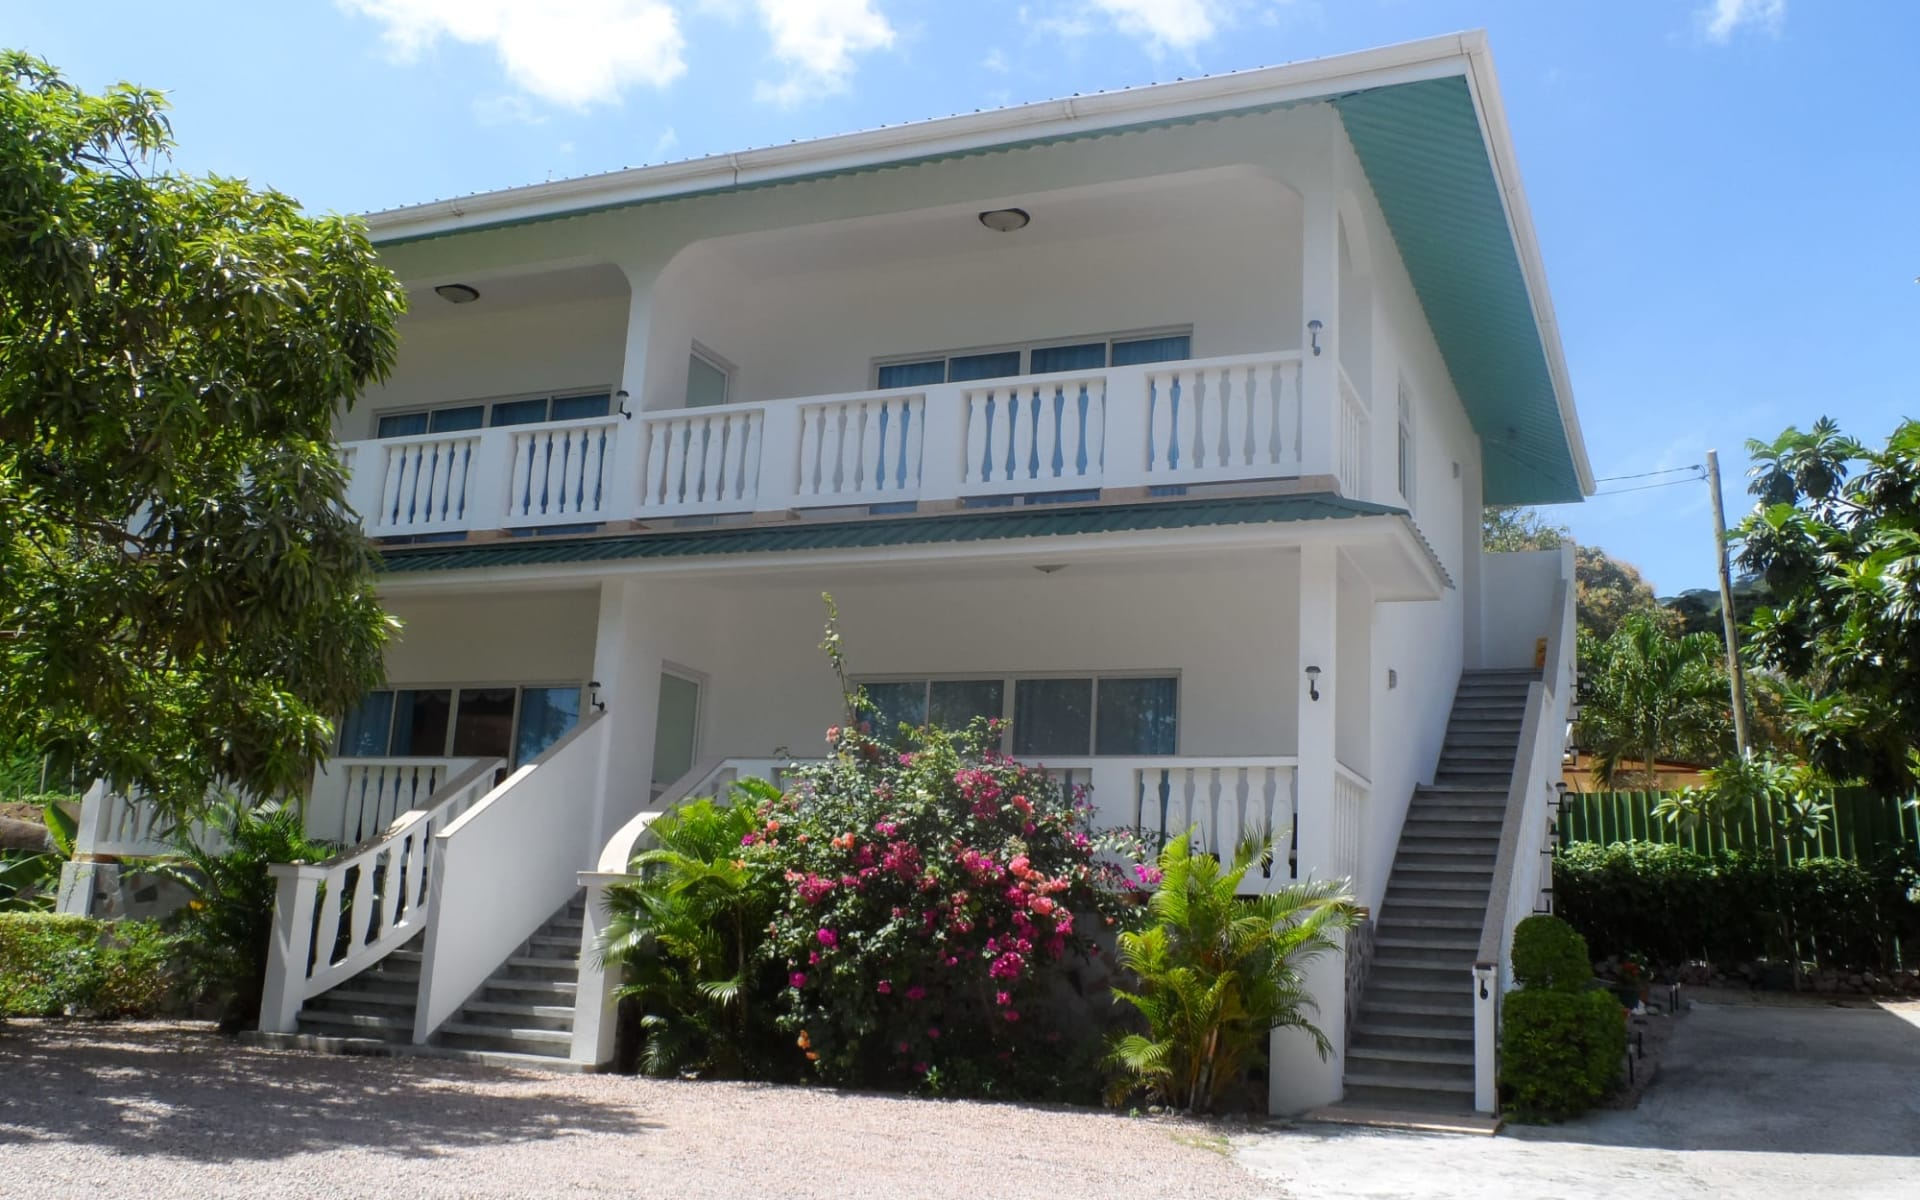 Divers Lodge in Mahé:  divers lodge guest house